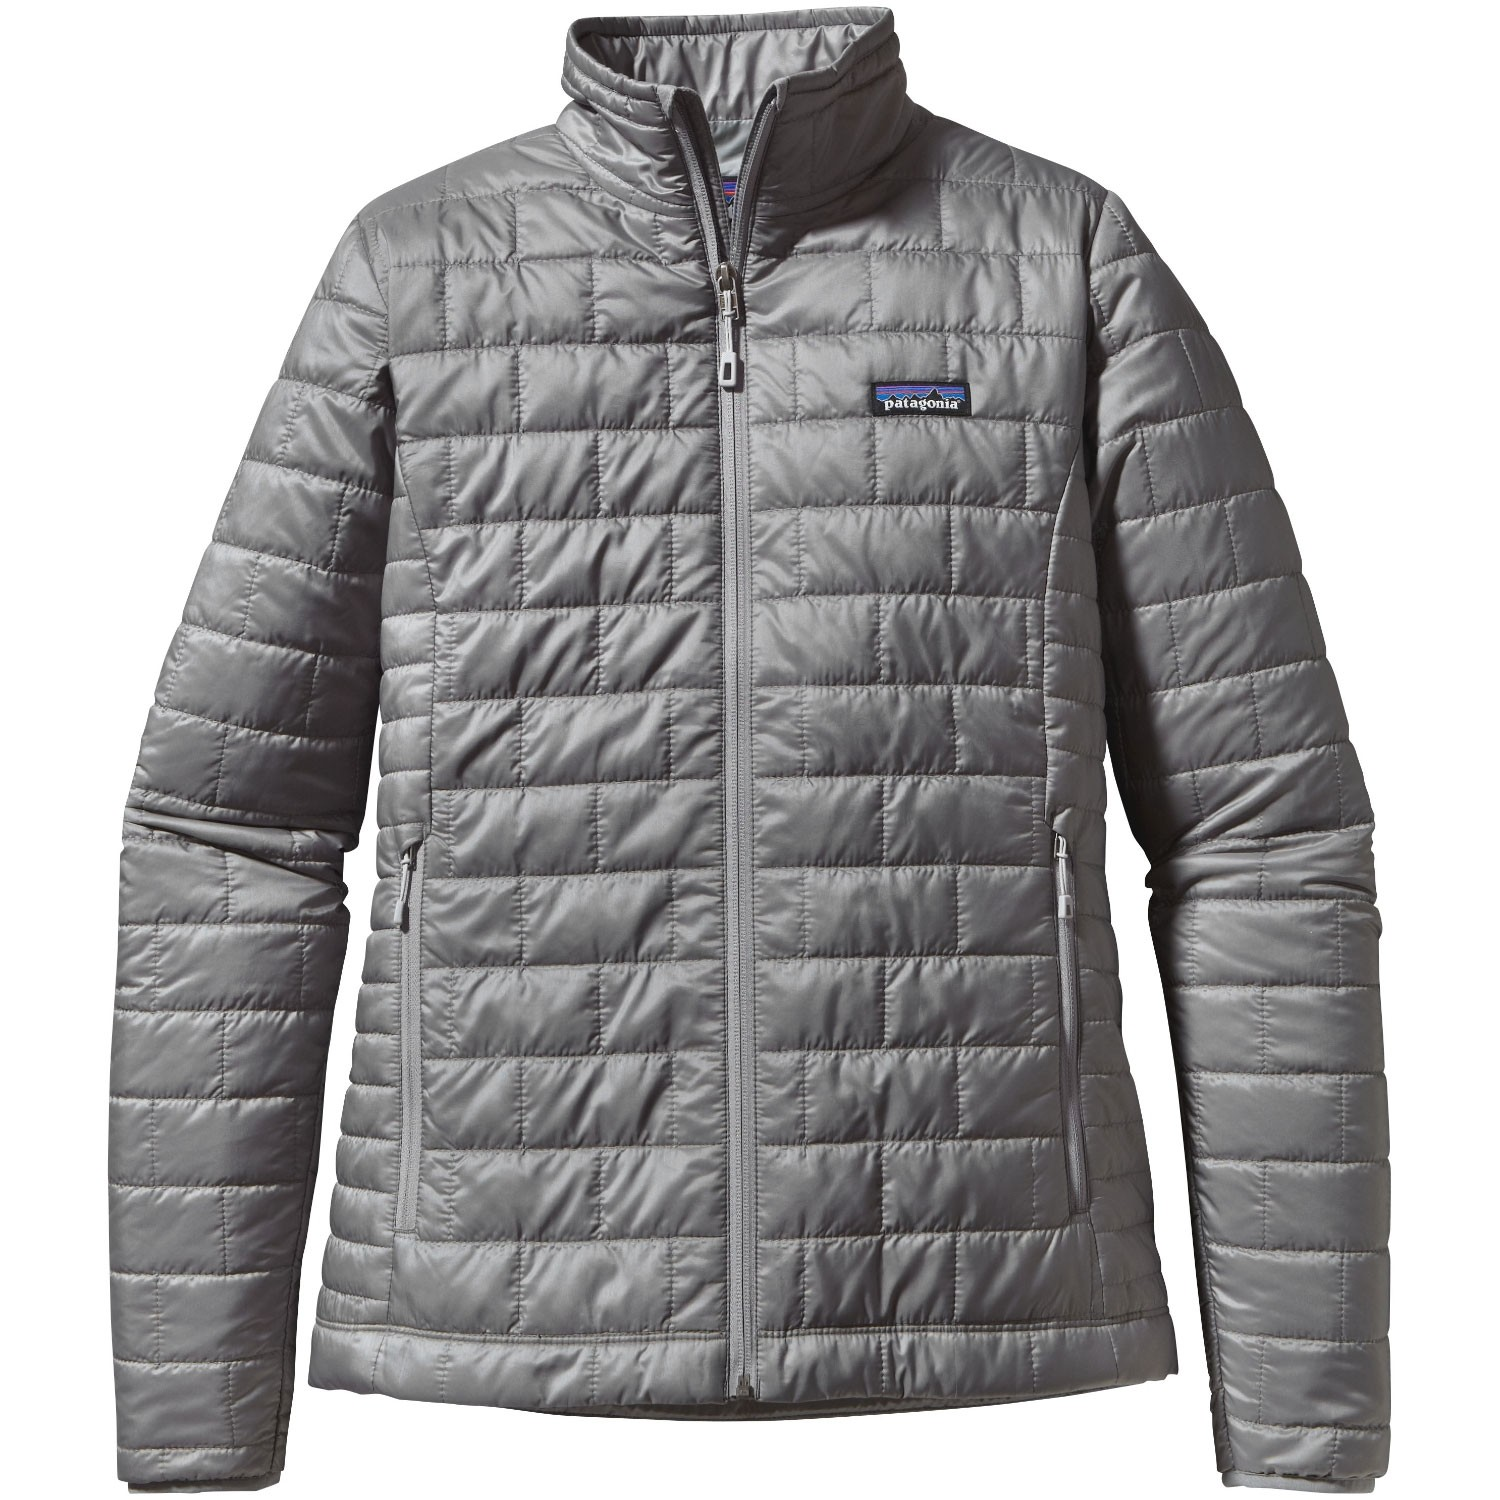 Patagonia-Nano-Puff-Jacket-Feather-Grey-AW17.jpg